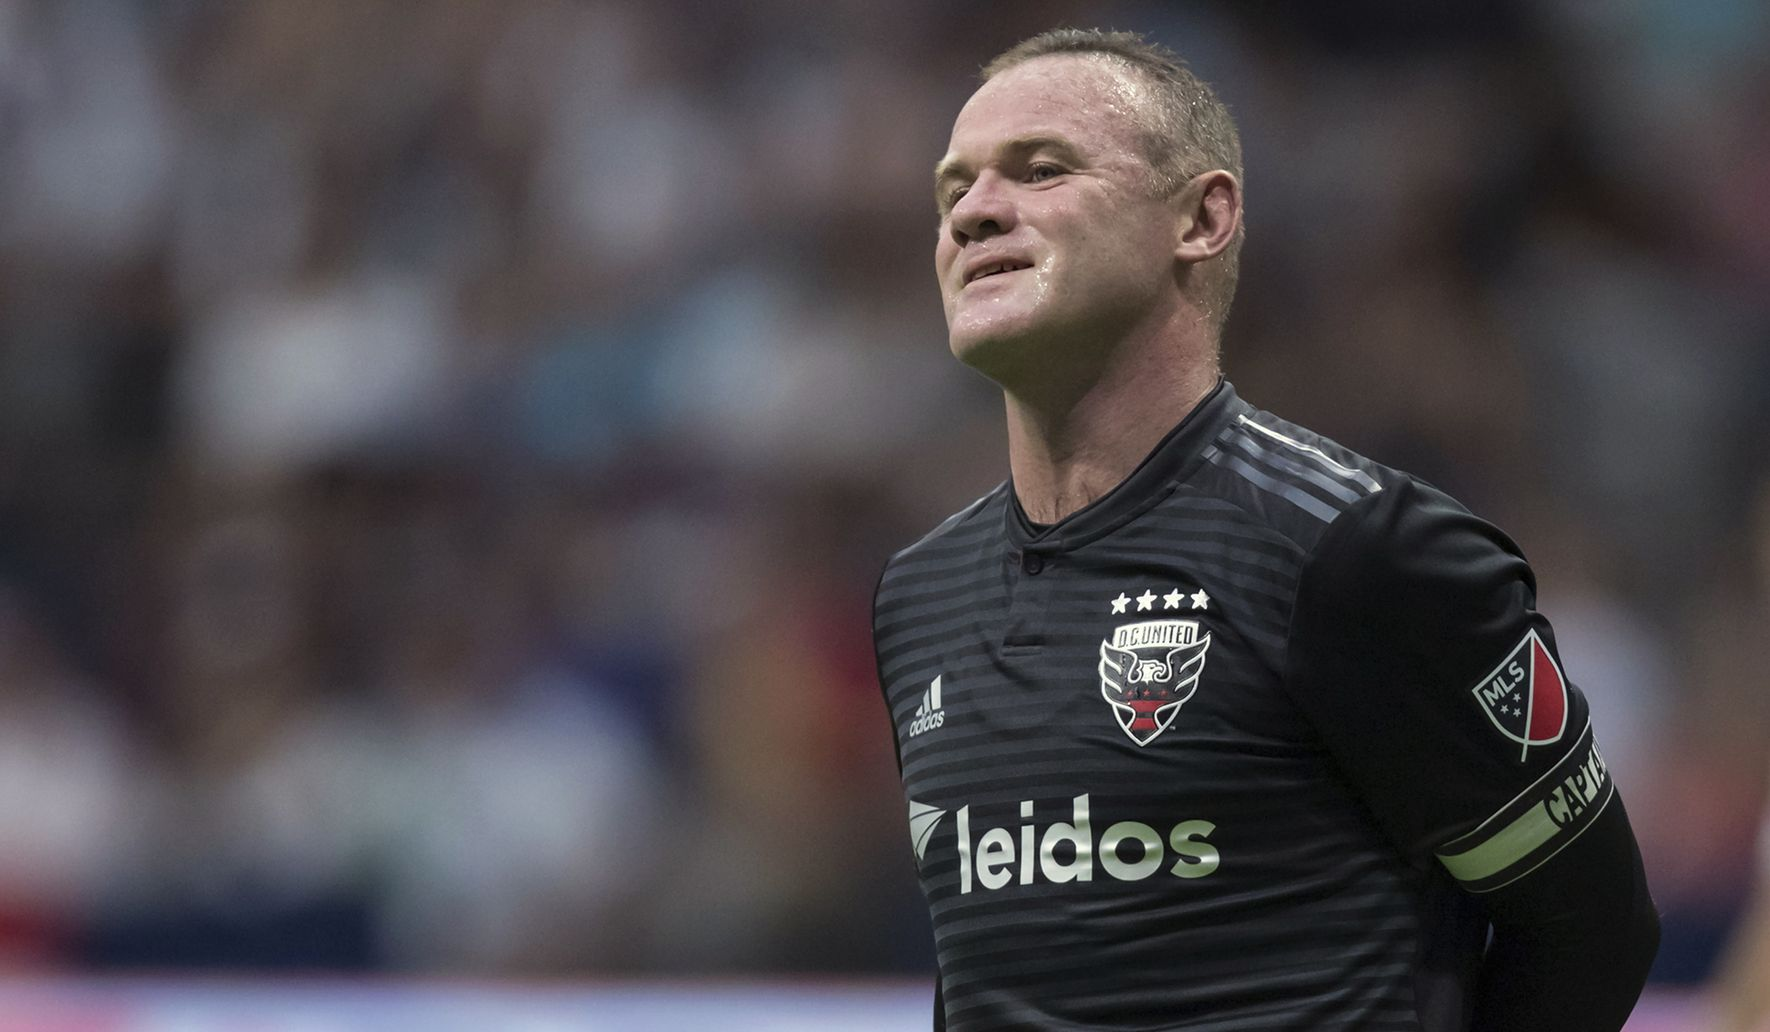 Wayne Rooney wants D.C. United playoff run before heading home to Engl